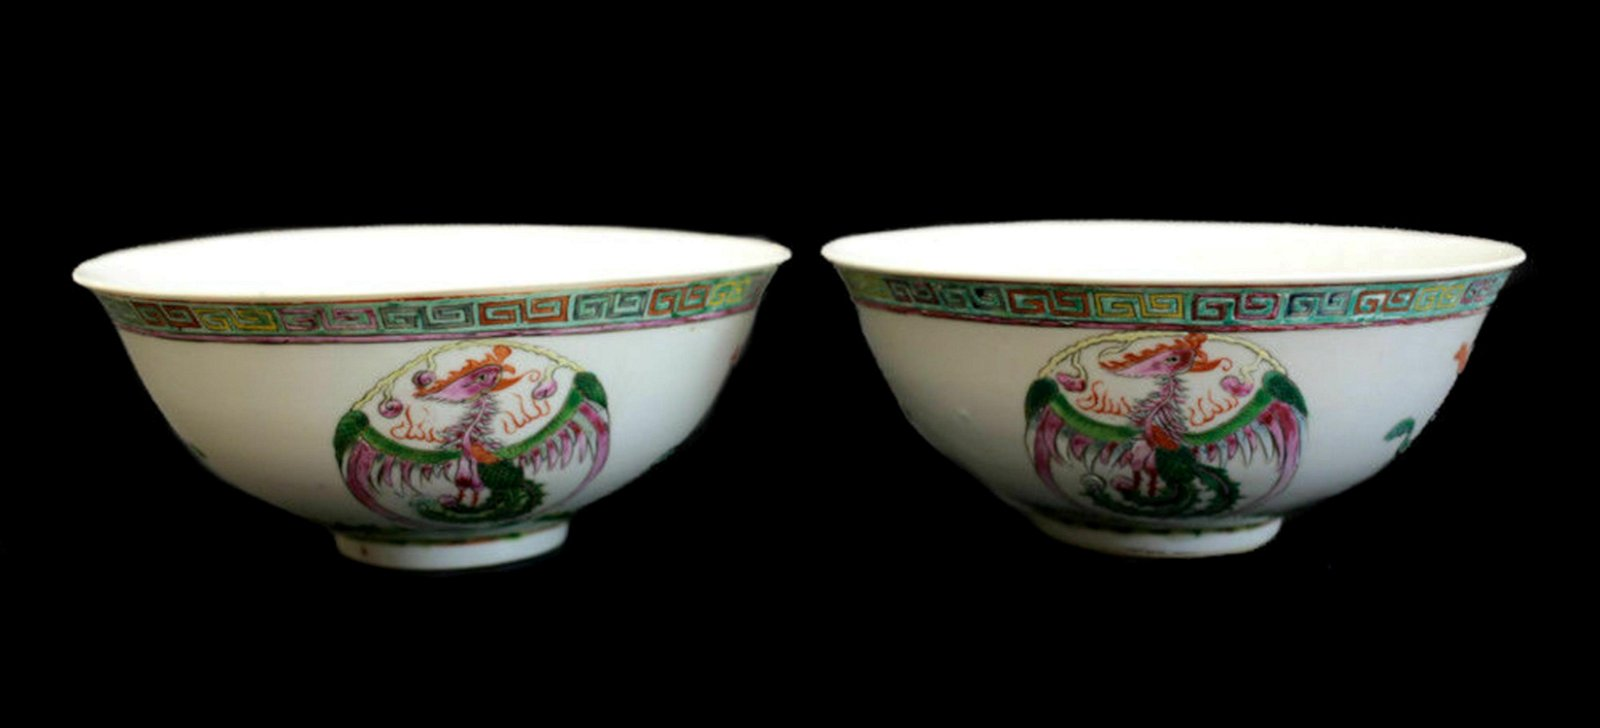 A Pair of Chinese Porcelain Bowls, Guangxu Mark